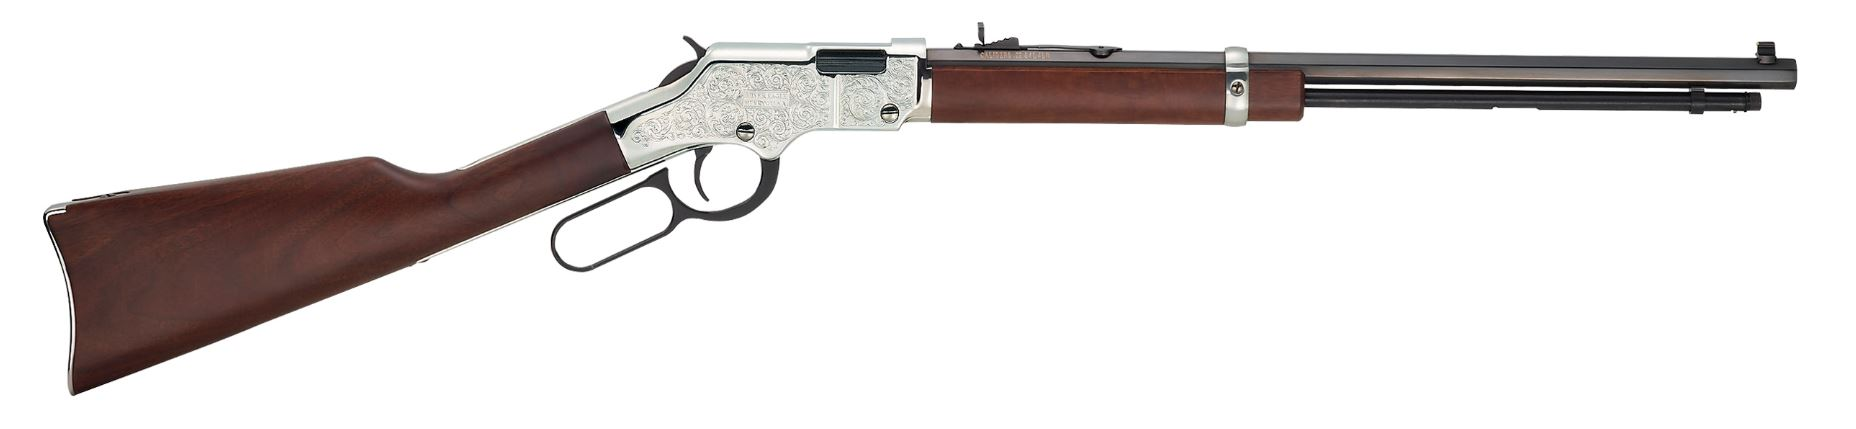 Henry Repeating Arms Silver Eagle 22 Magnum